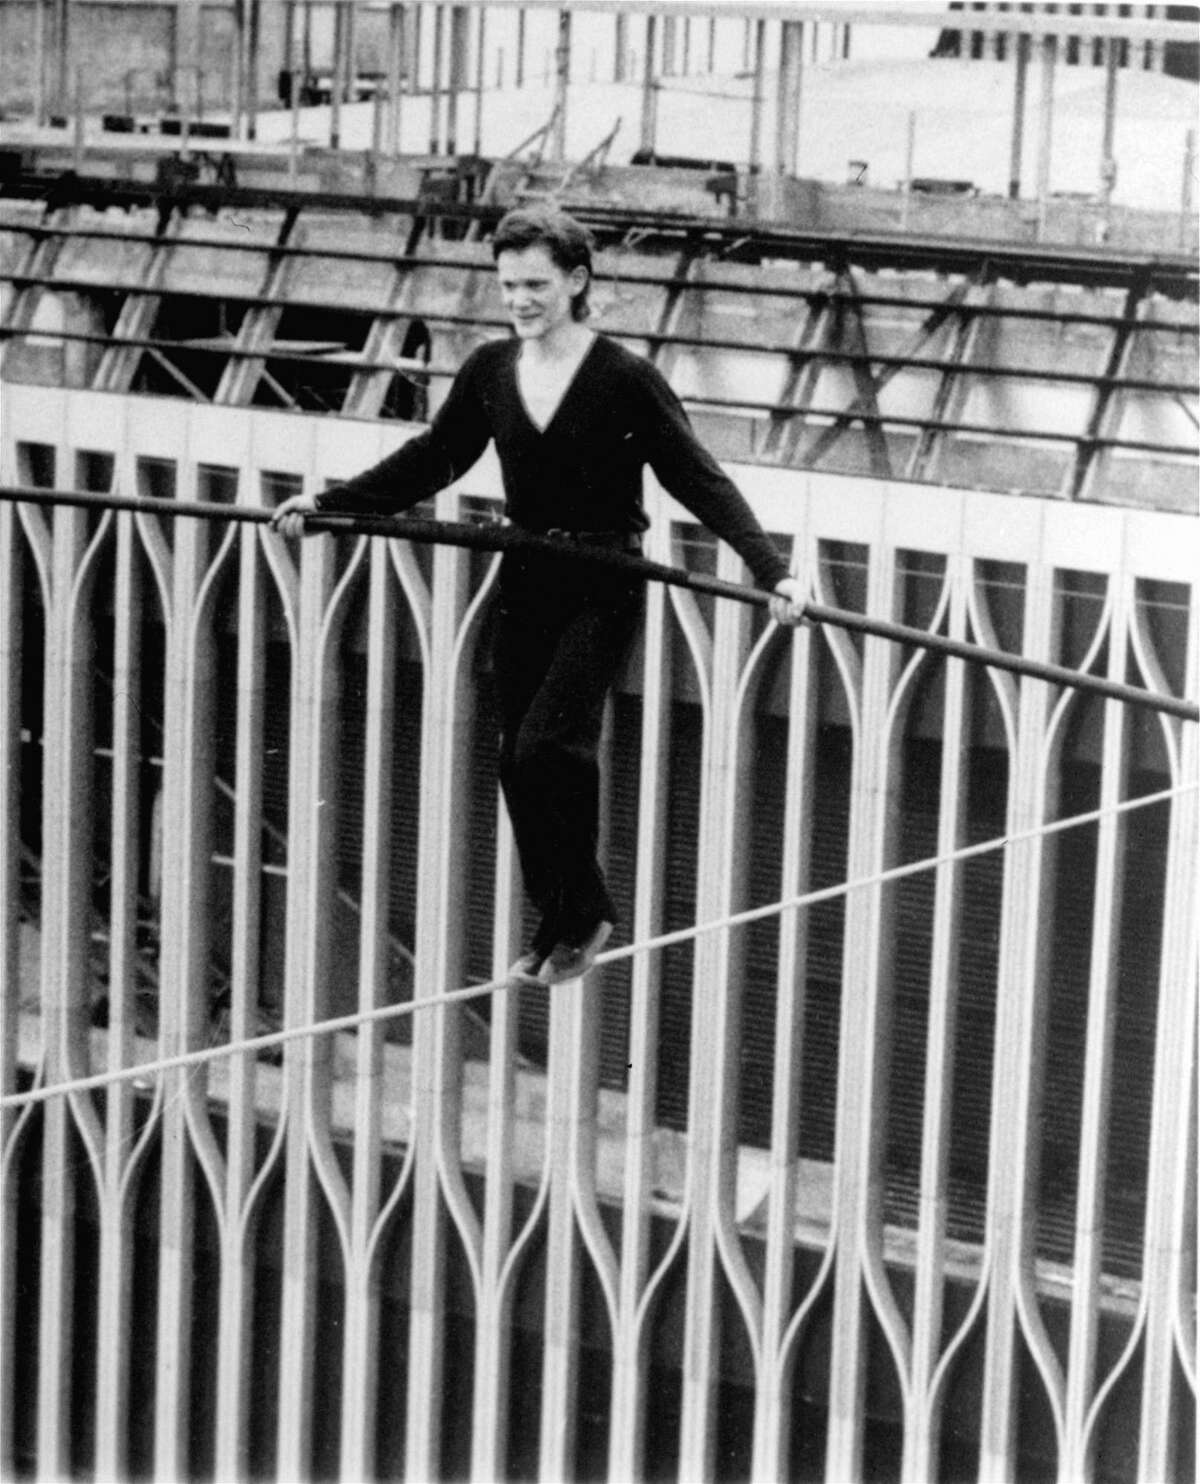 FILE--French aerialist Philippe Petit, 24, balances as he crosses a cable stretched between the World Trade Center towers high above New York City Wednesday, Aug. 7, 1974. Petit walked from one rooftop to a point close to the second rooftop and back again as crowds gathered on the lower Manhattan streets to watch the aerial feat. 'It remains one of the most important, most beautiful walks I have ever done,' Petit said in a recent interview with The Associated Press from his upstate home near Woodstock. (AP Photo/Alan Welner)